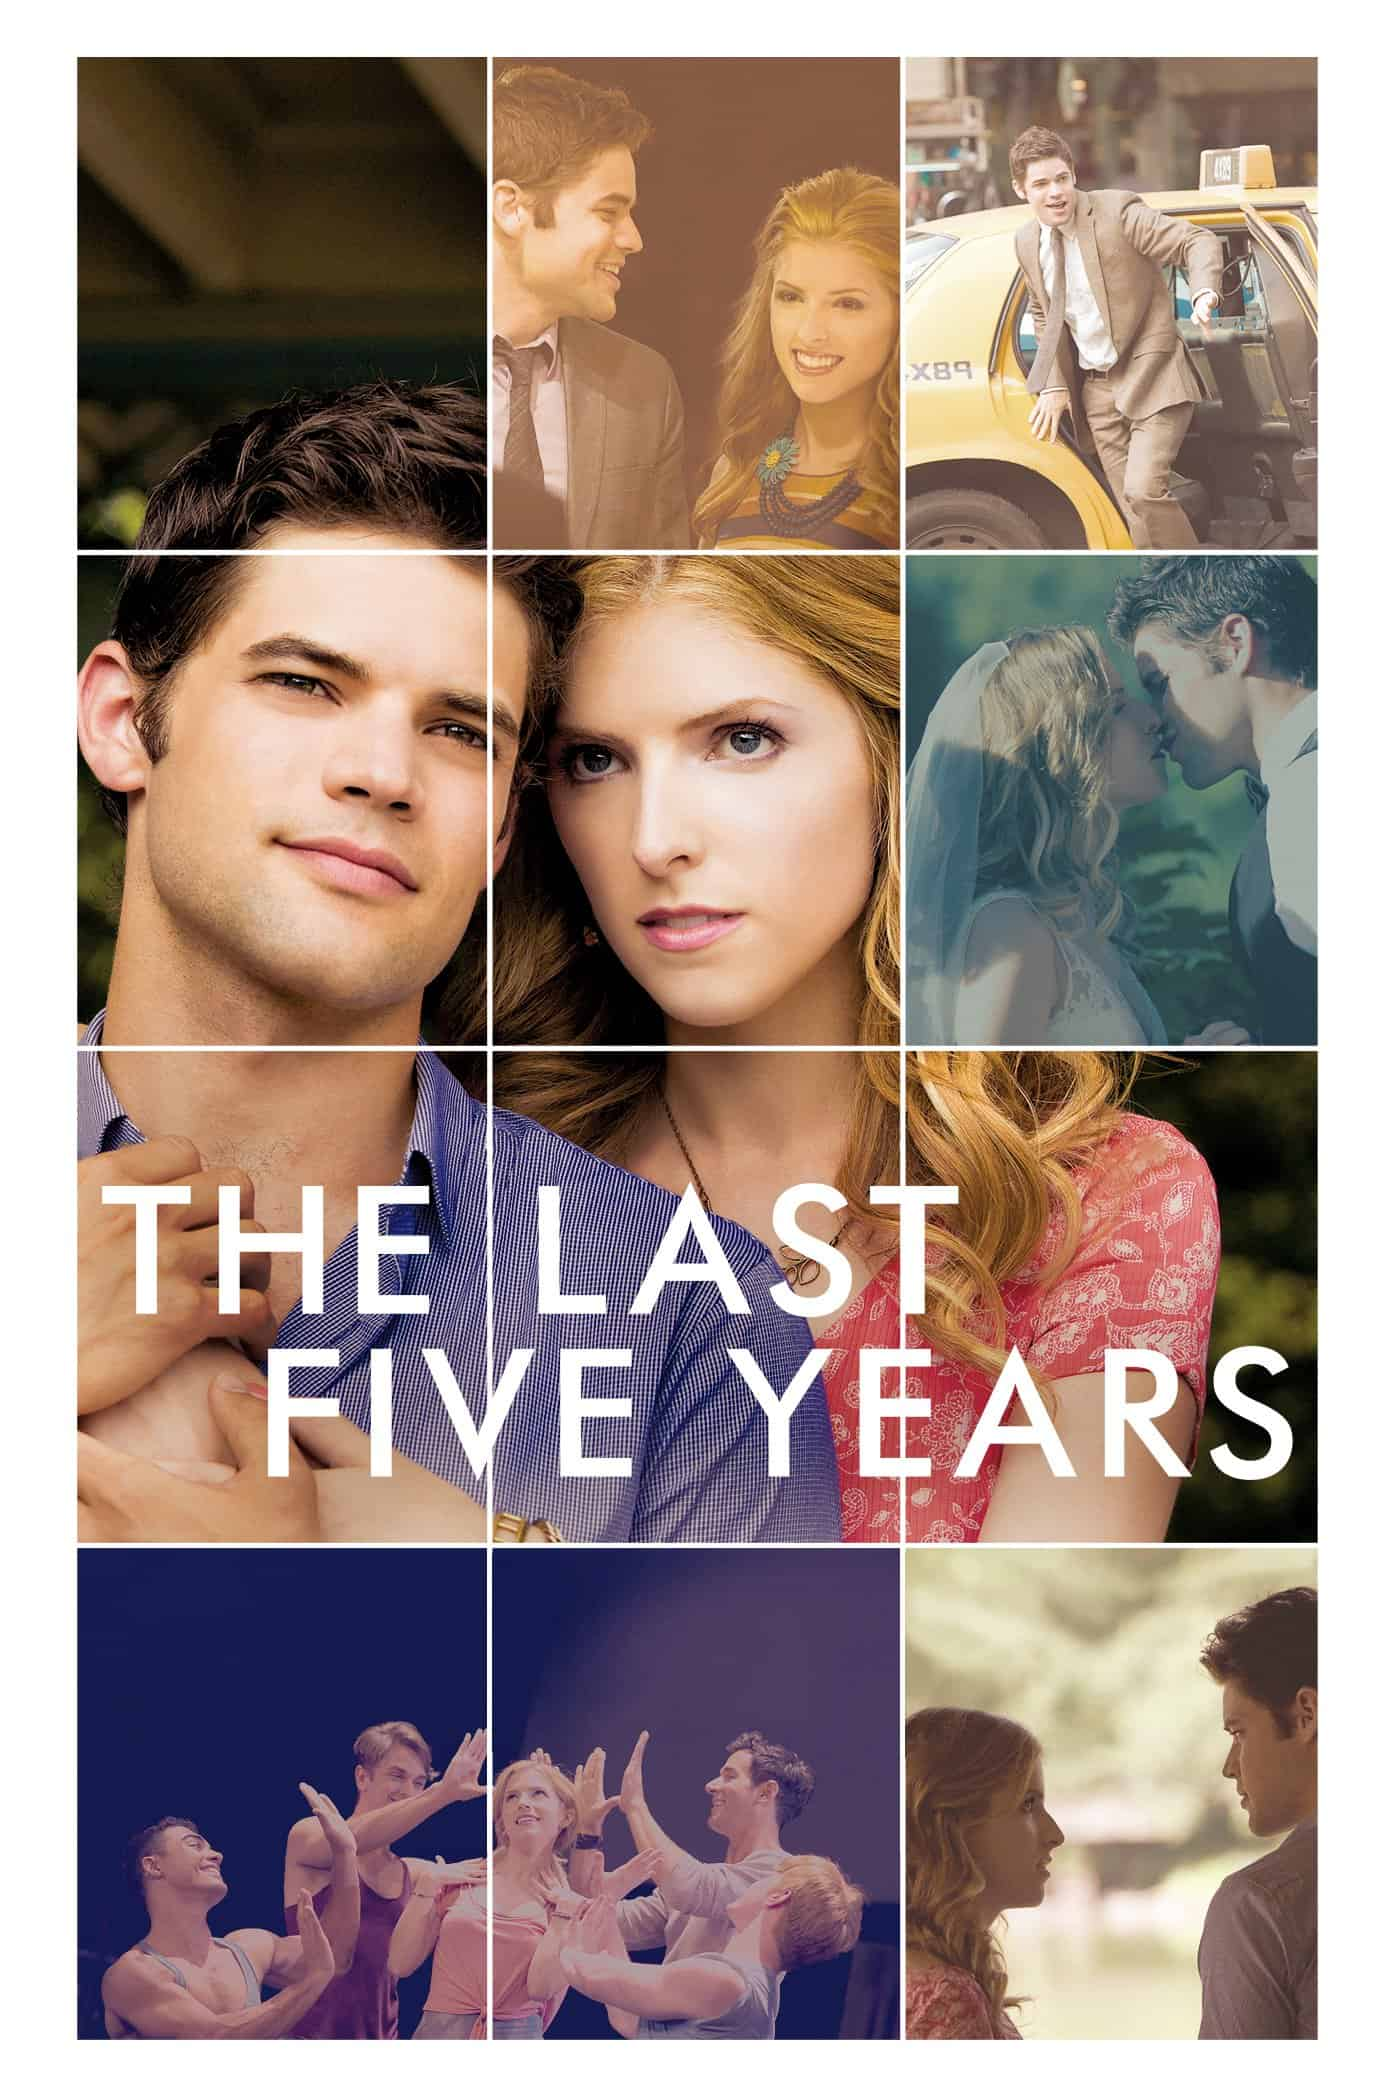 The Last Five Years, 2014